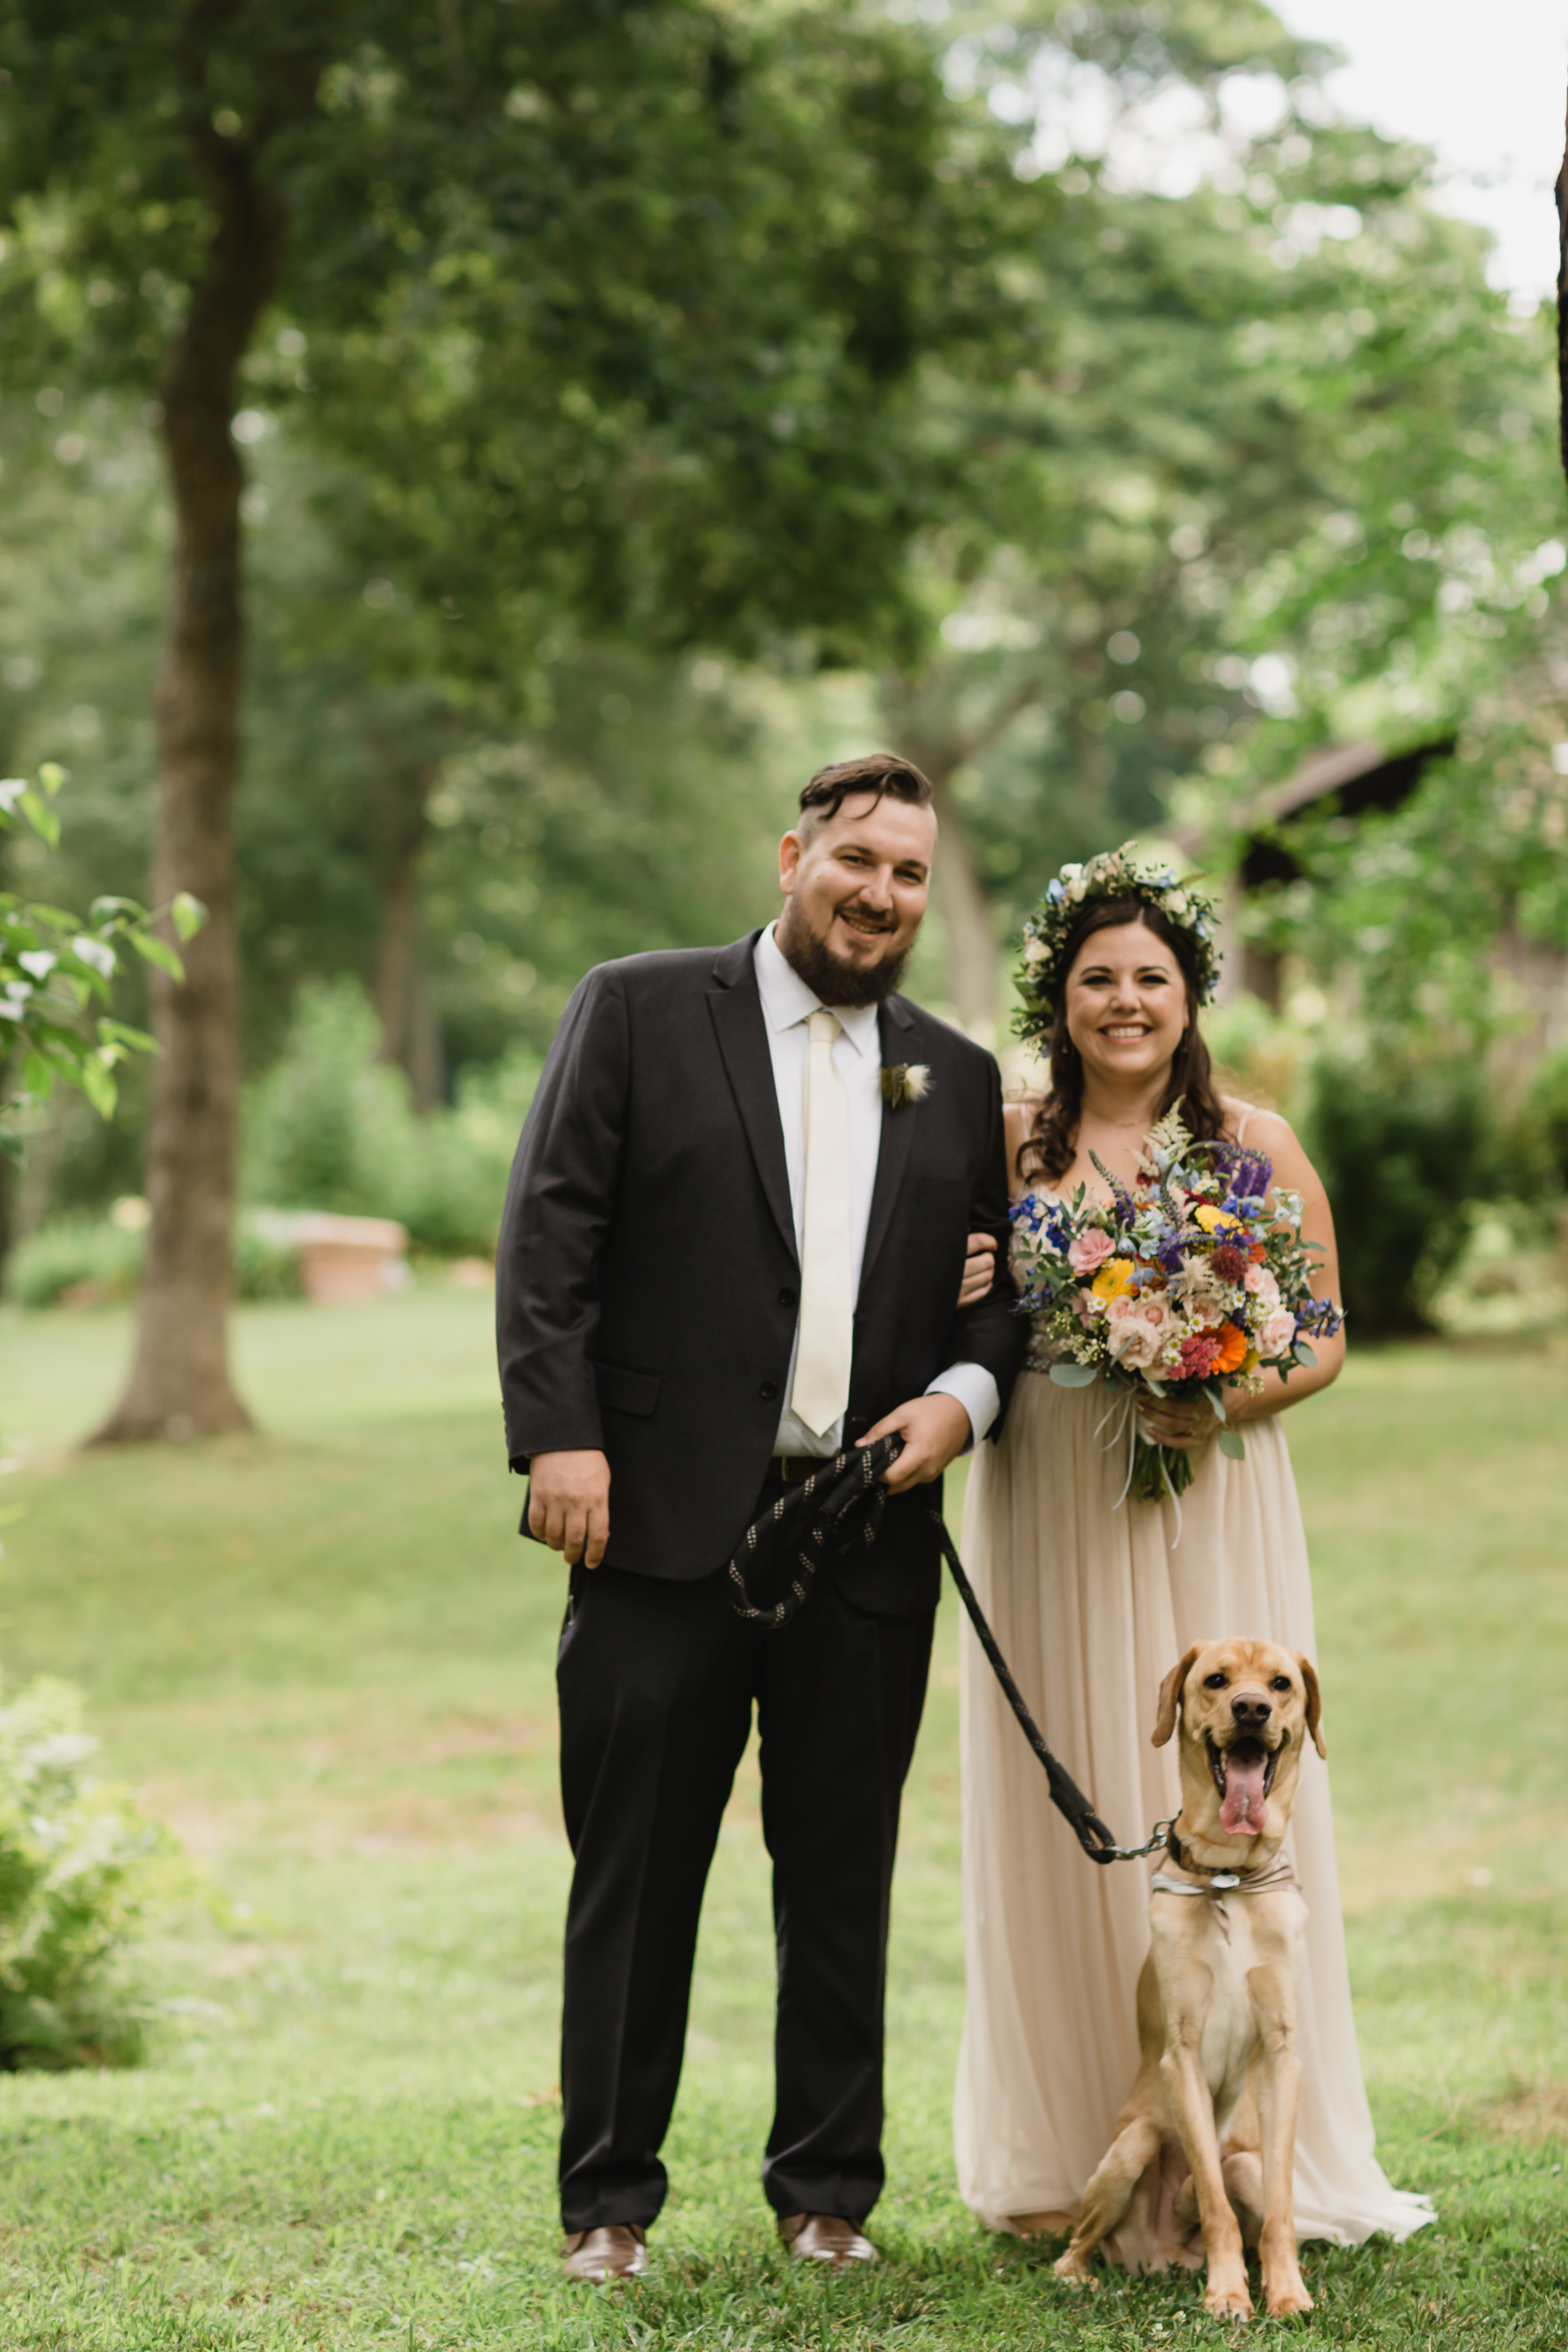 Gianna Keiko Atlanta NYC California Wedding Photographer_Sneak Peek-5.jpg